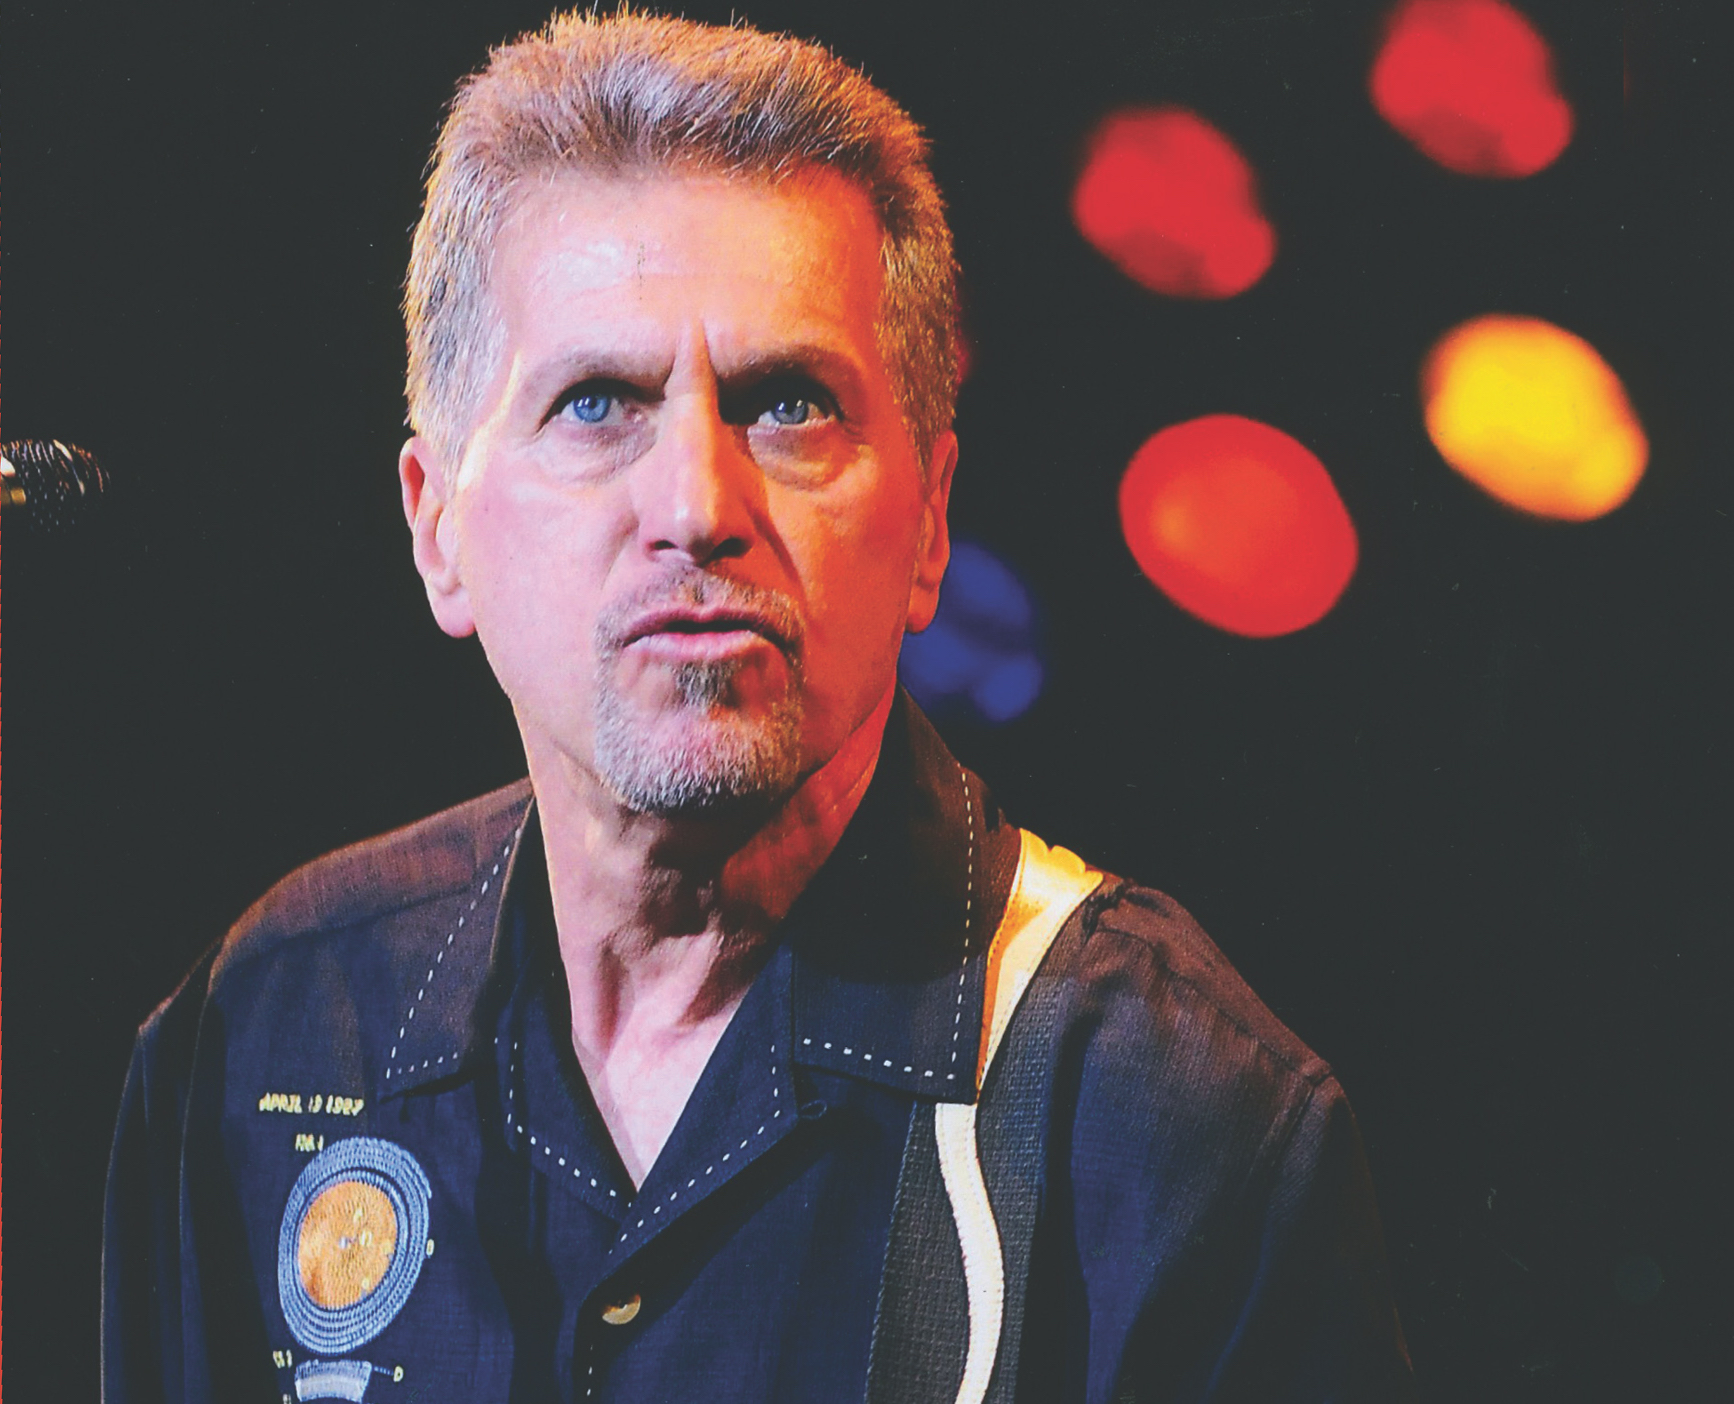 Guitarist Johnny Rivers performs Nov. 13 at the State Theatre in Easton.  (Courtesy Photo)